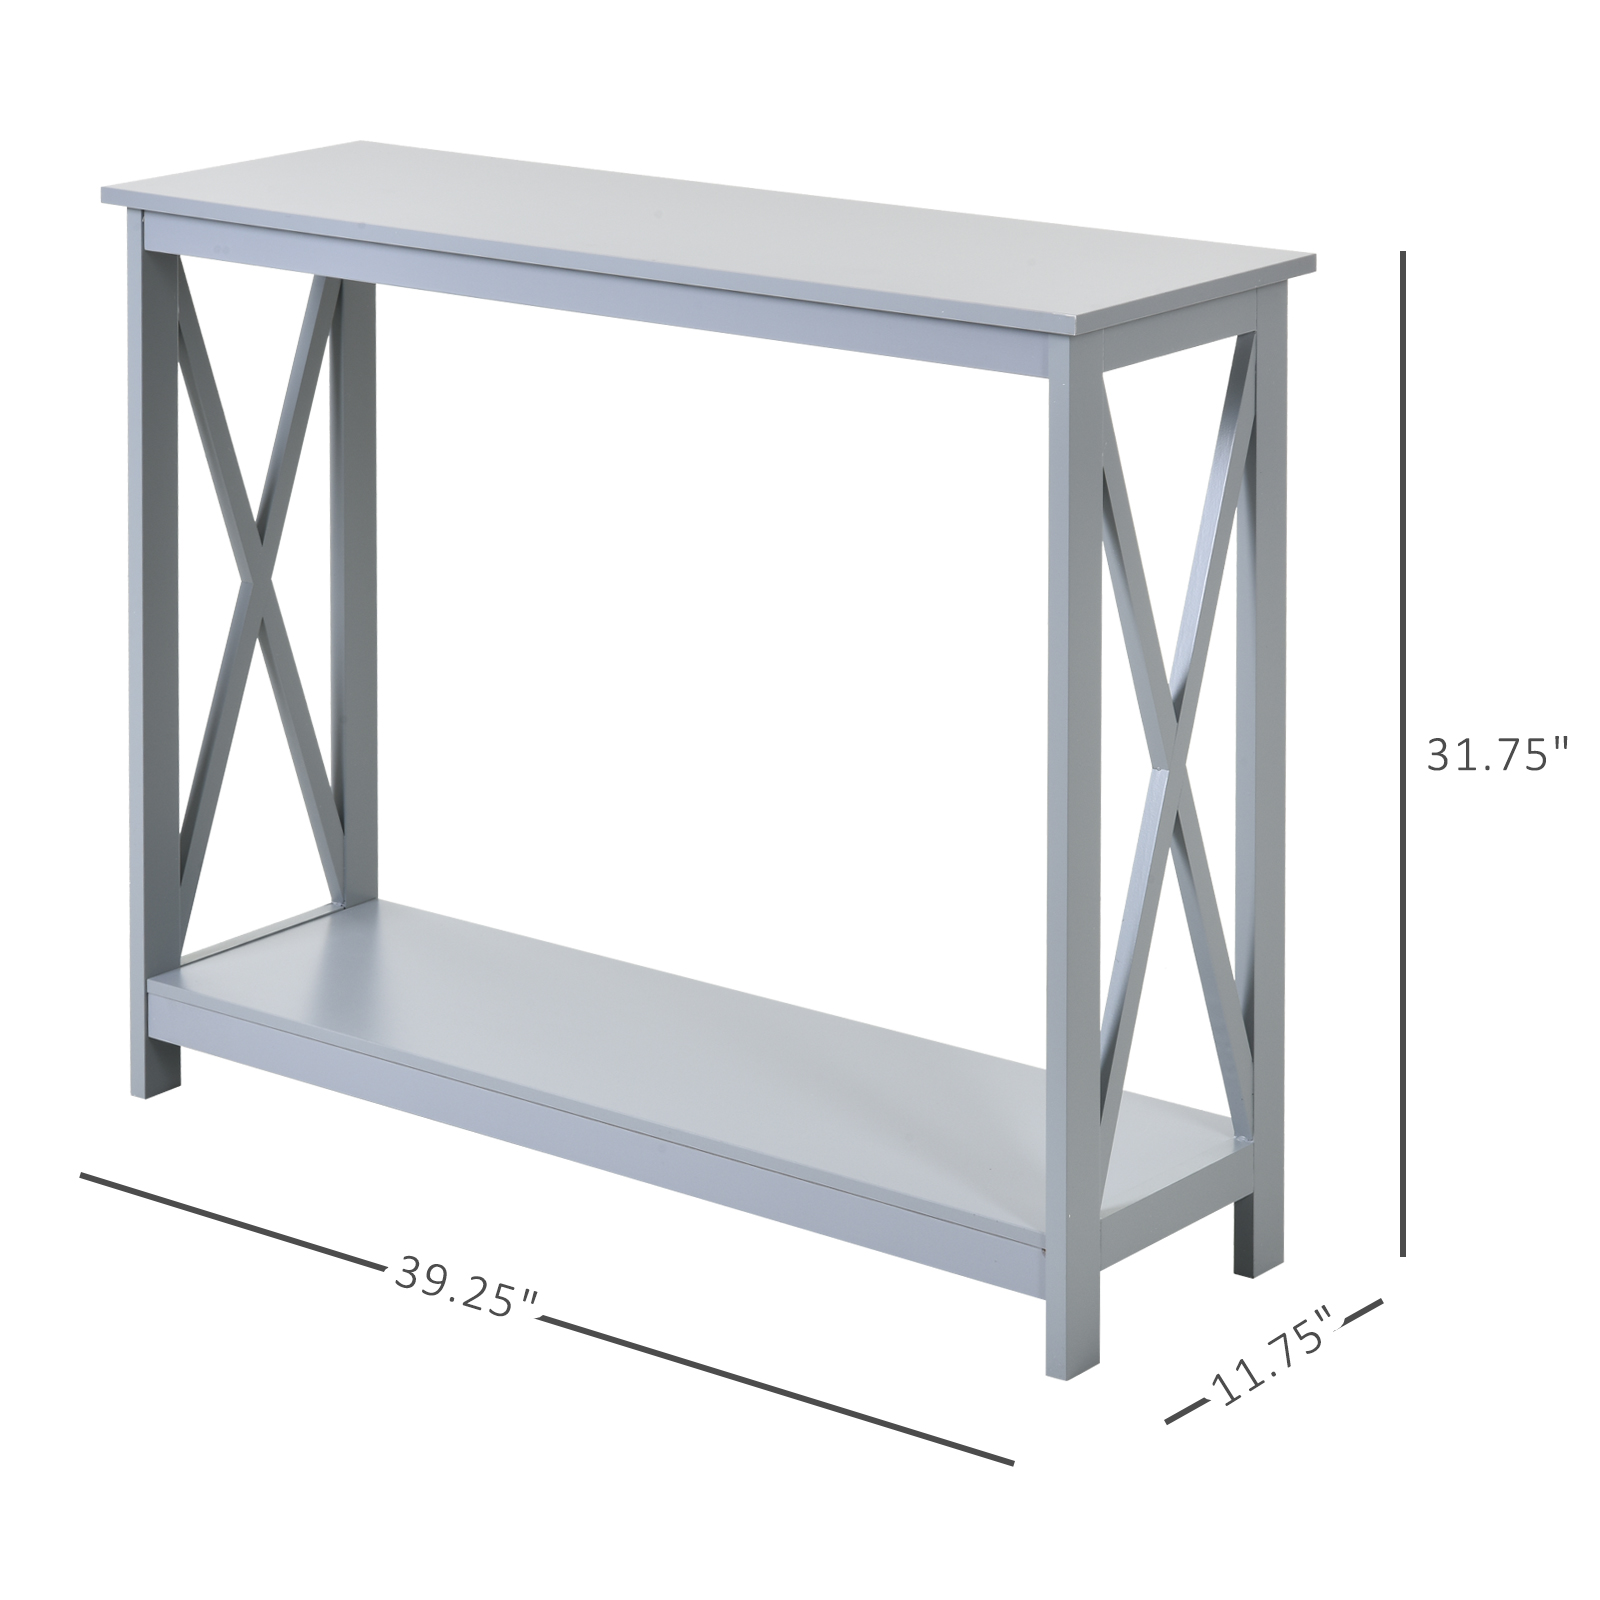 homcom 2 tier bench sofa console table with underneath storage shelf for the entryway living room hallway grey